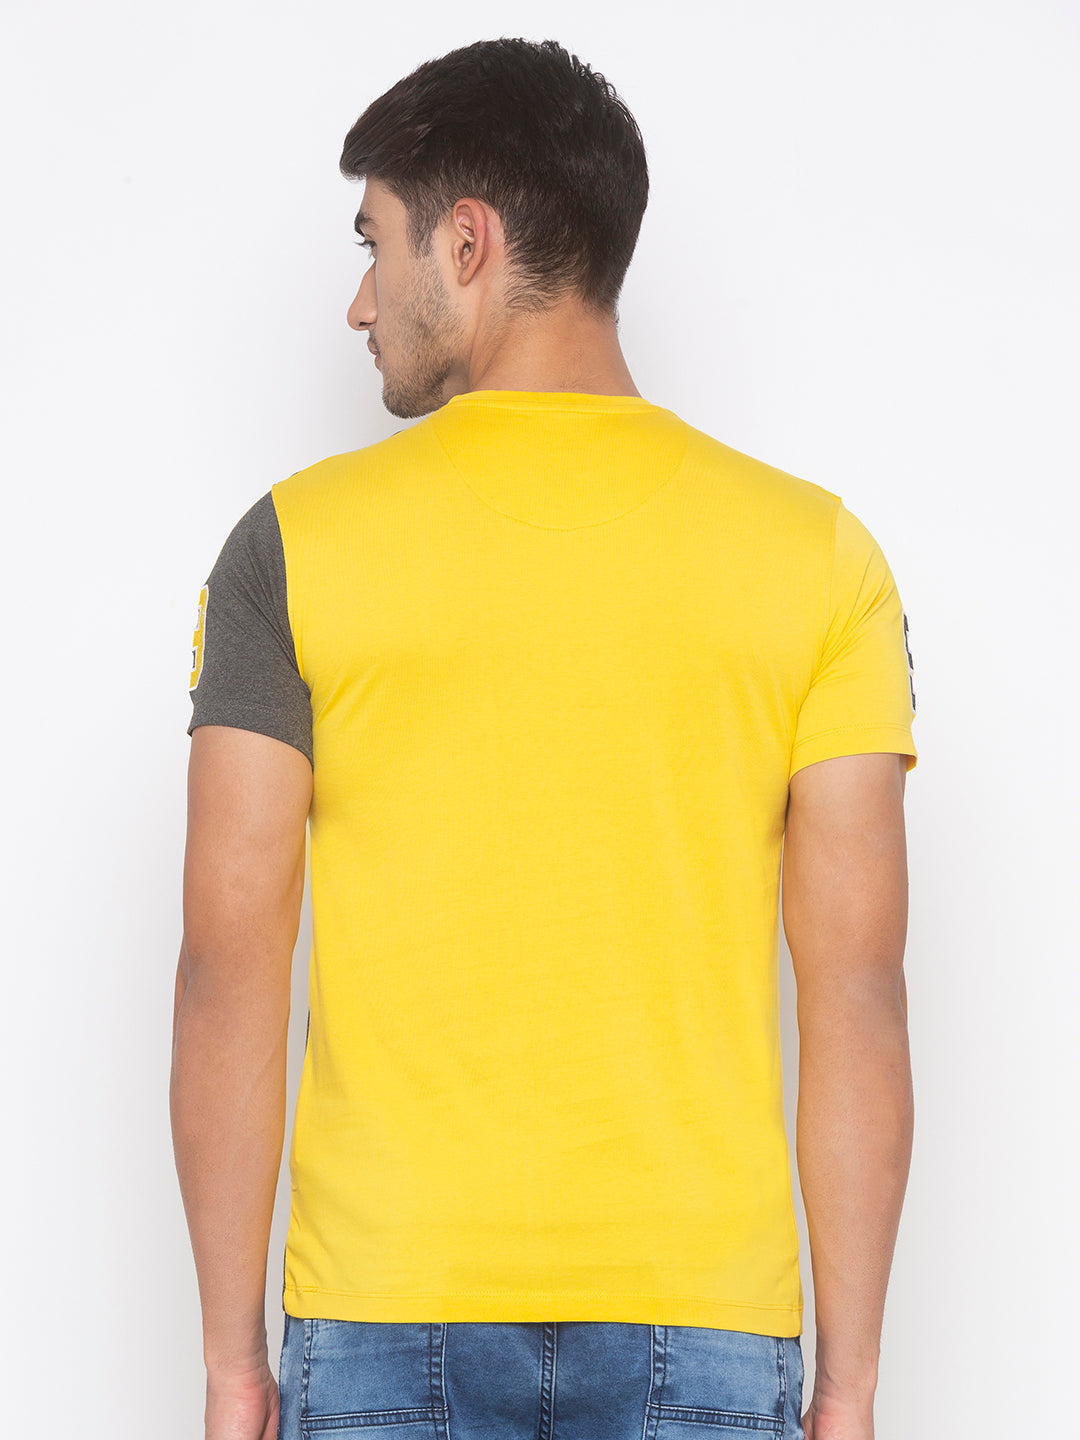 Globus Yellow & Grey Color Block T-Shirt-3